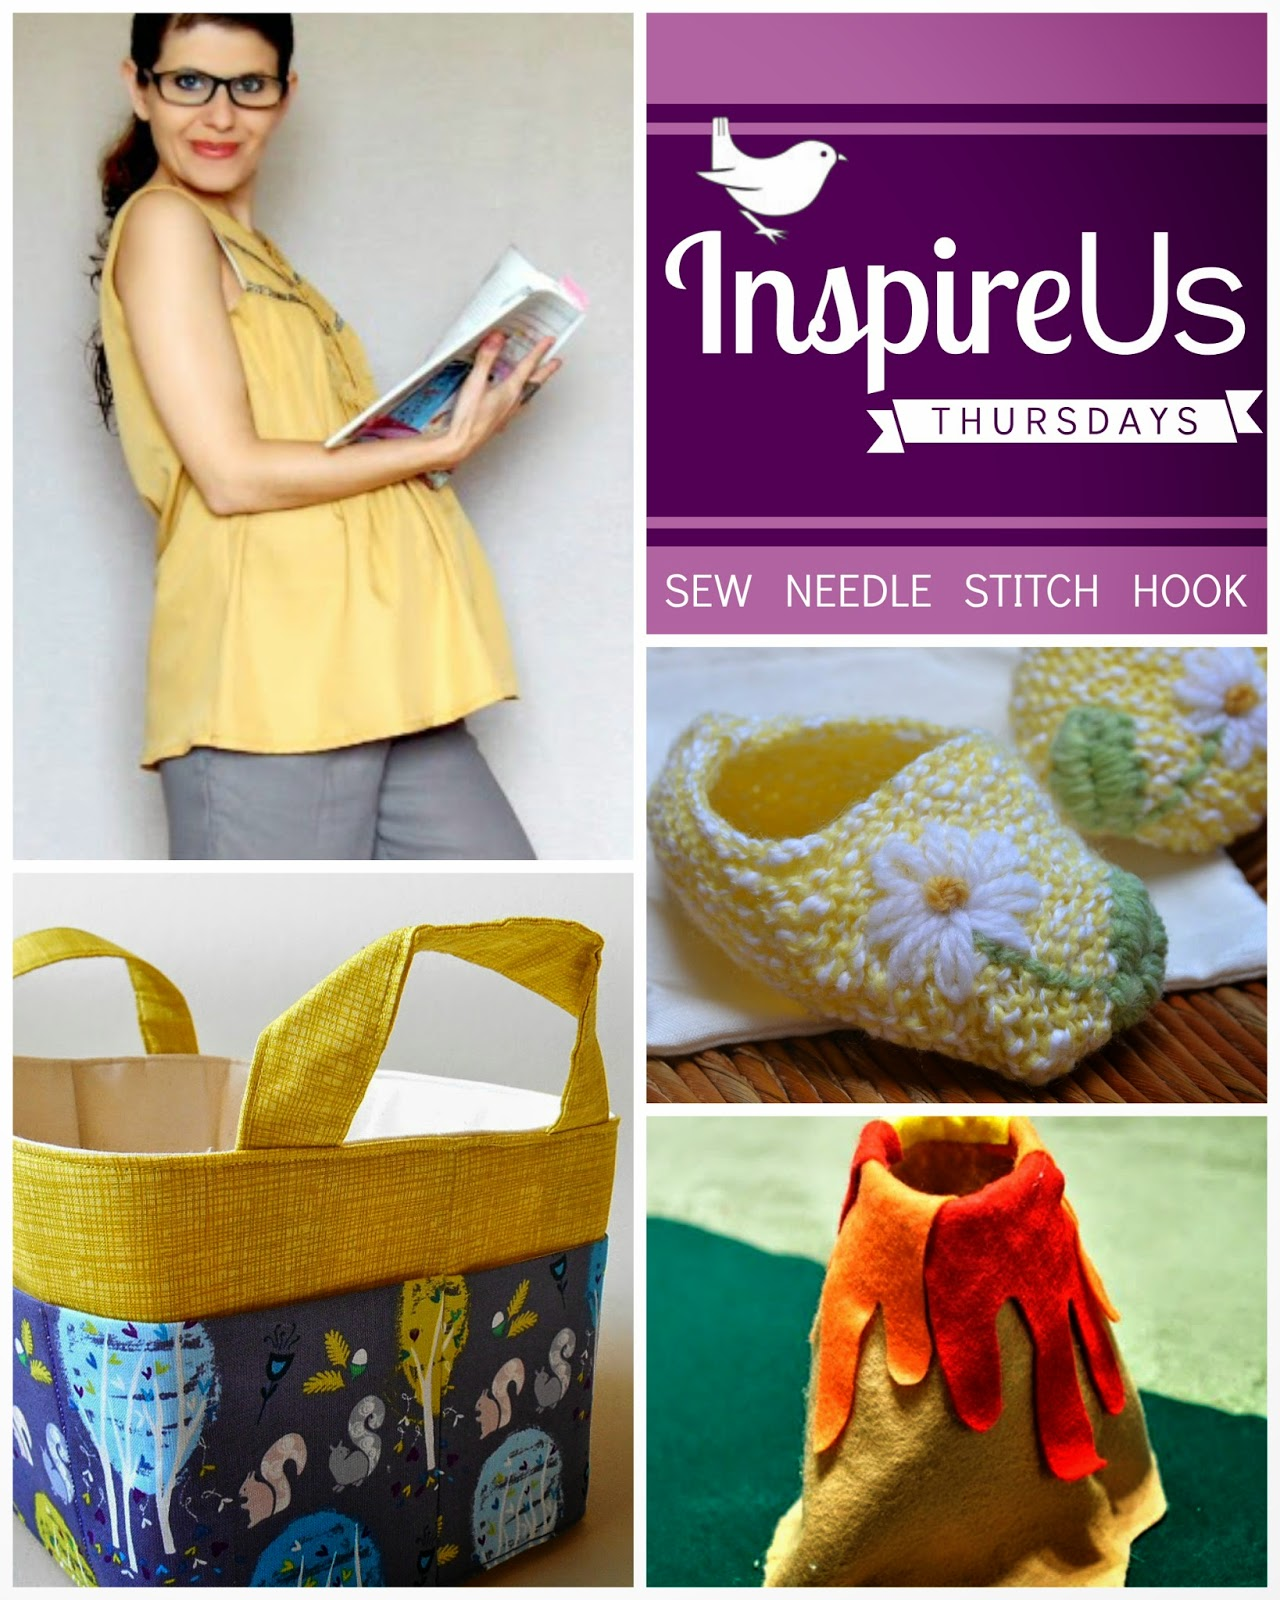 Inspired Us Thursdays: Sew Needle Stitch Hook, a weekly link party of fiber arts. | The Inspired Wren